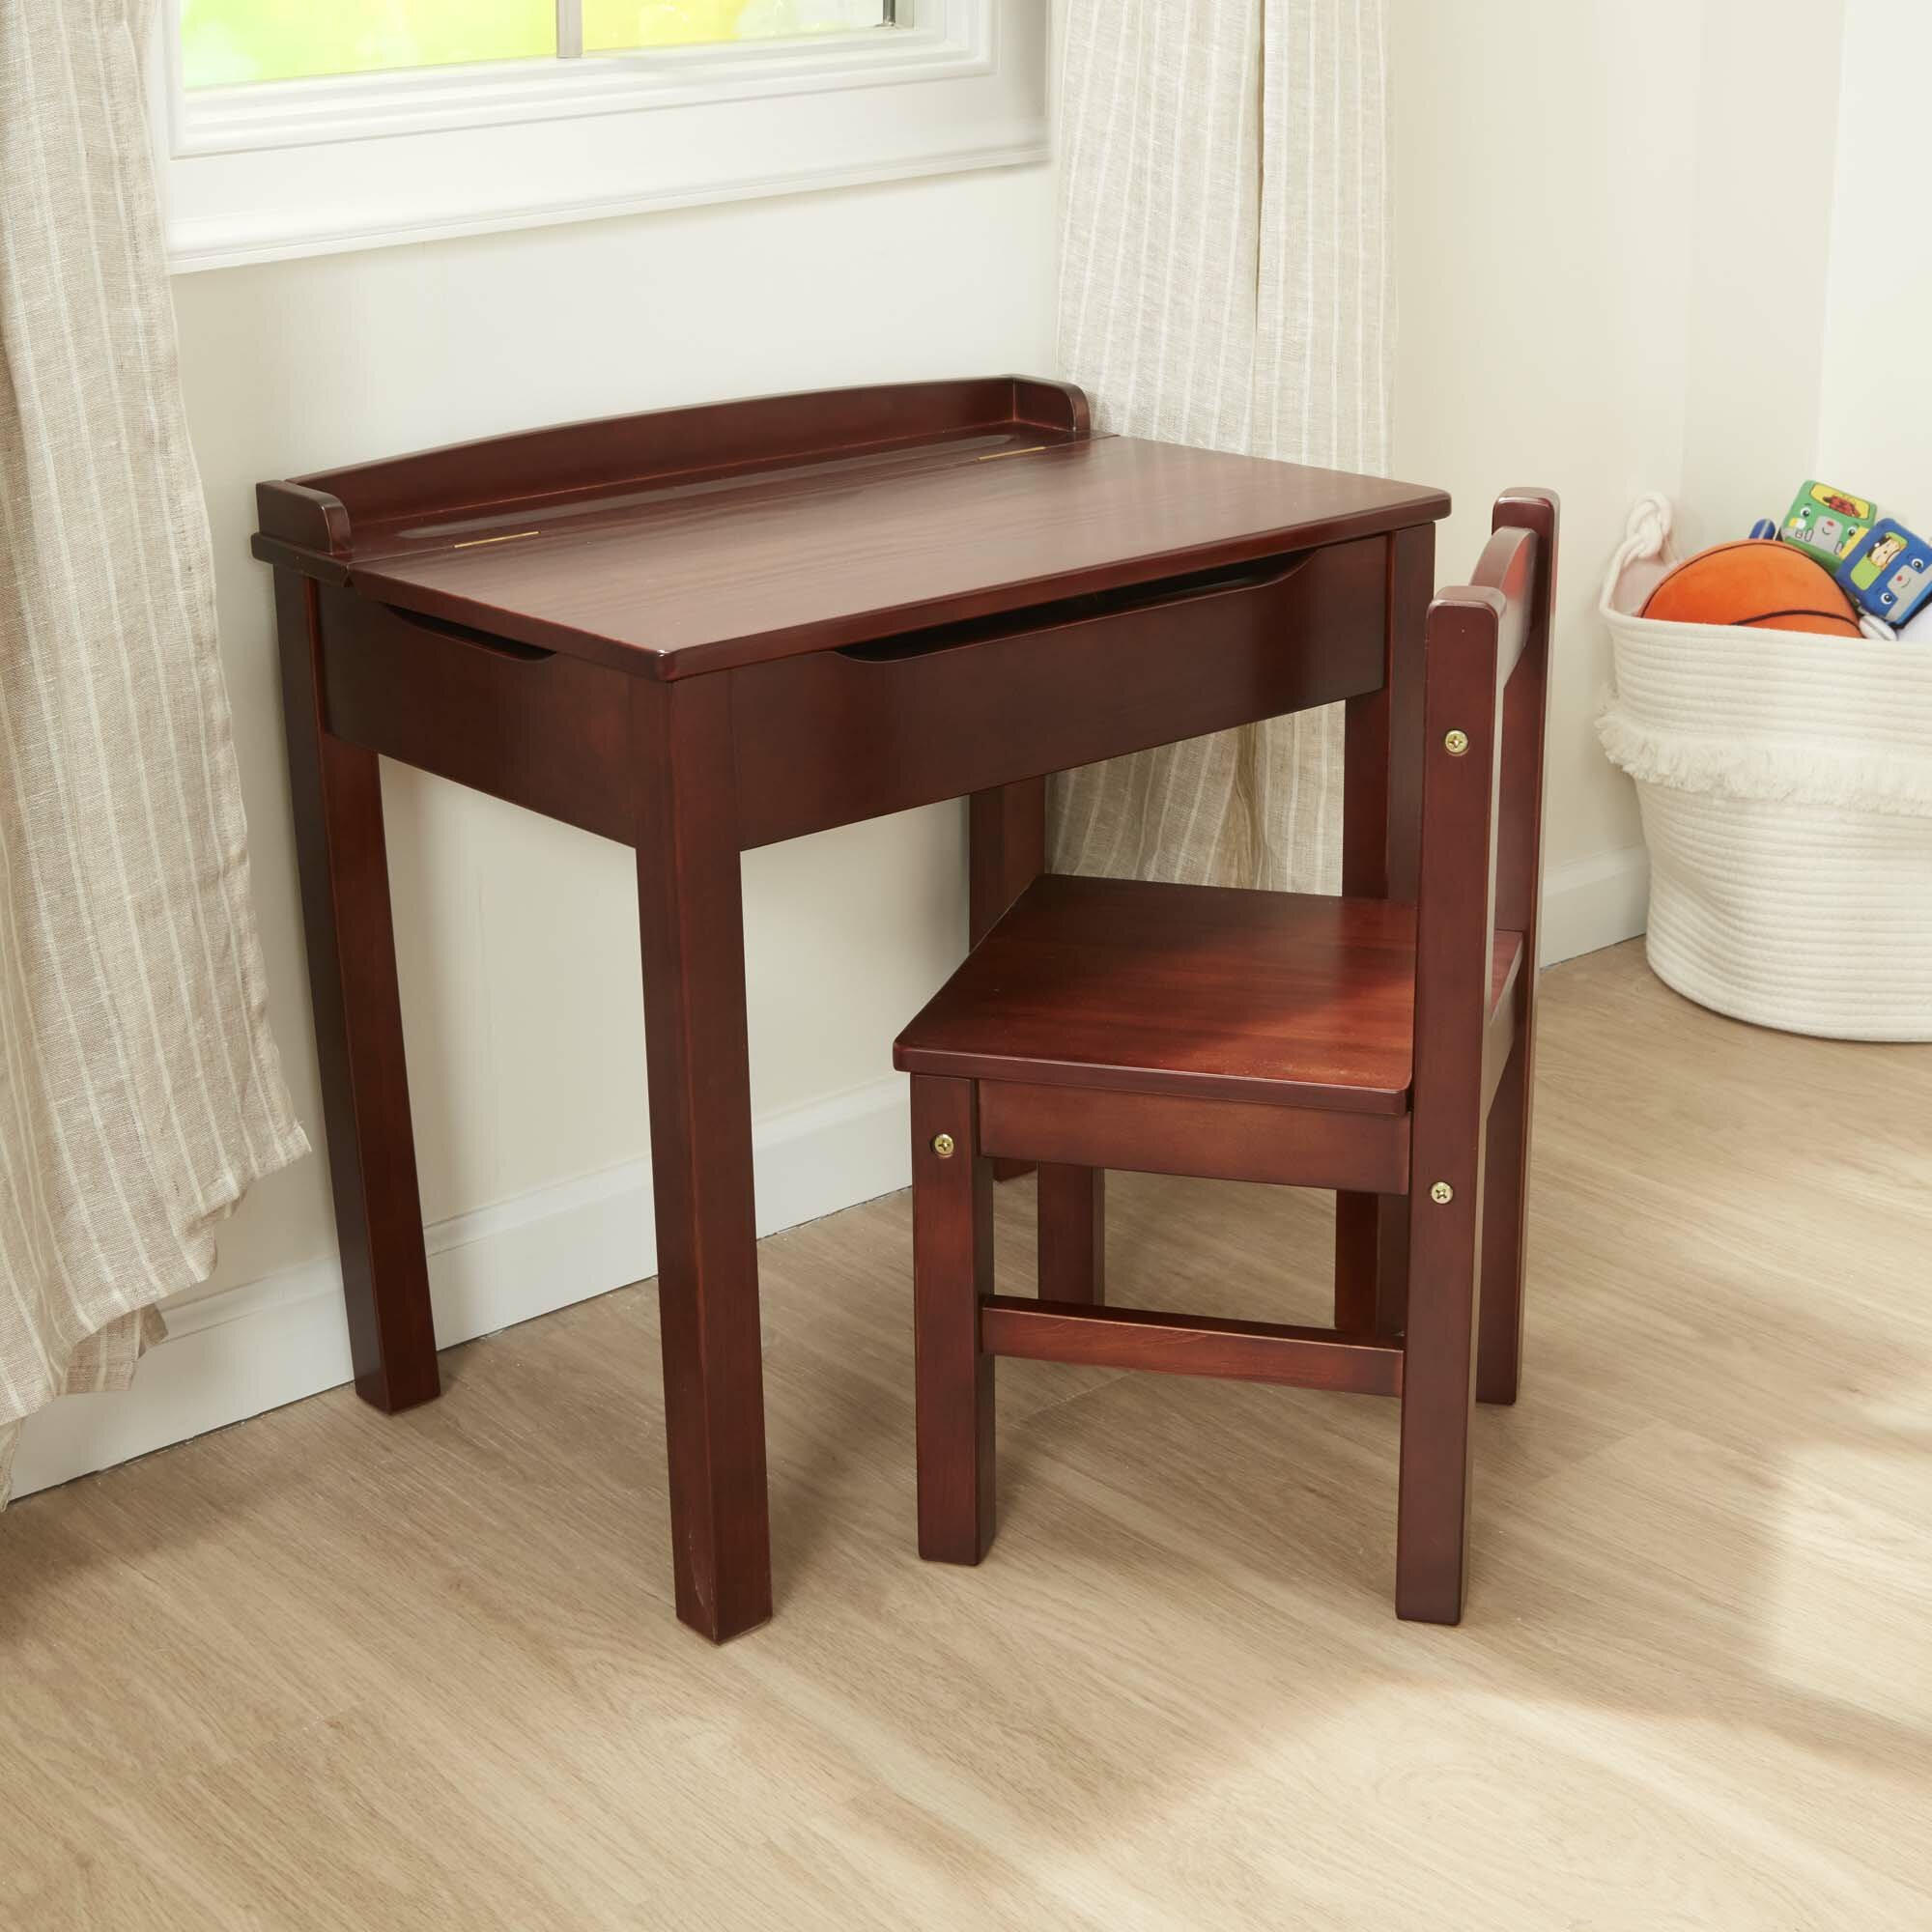 Surprising Kids Lift Top 2 Piece Writing Table And Chair Set Dailytribune Chair Design For Home Dailytribuneorg